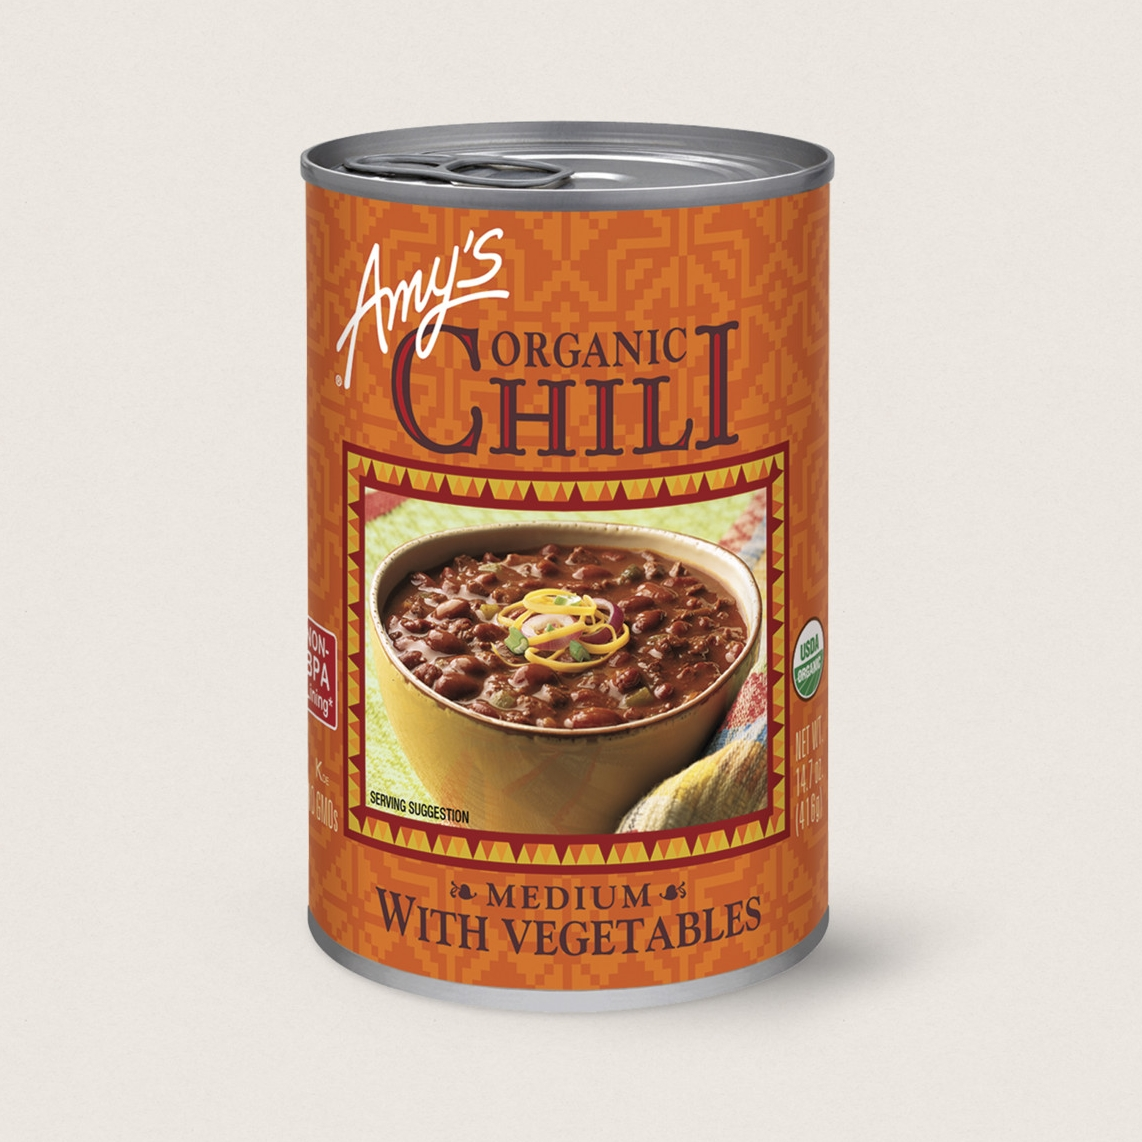 000511-704158-web3d-us-medium-veg-chili-1-4-16.jpg